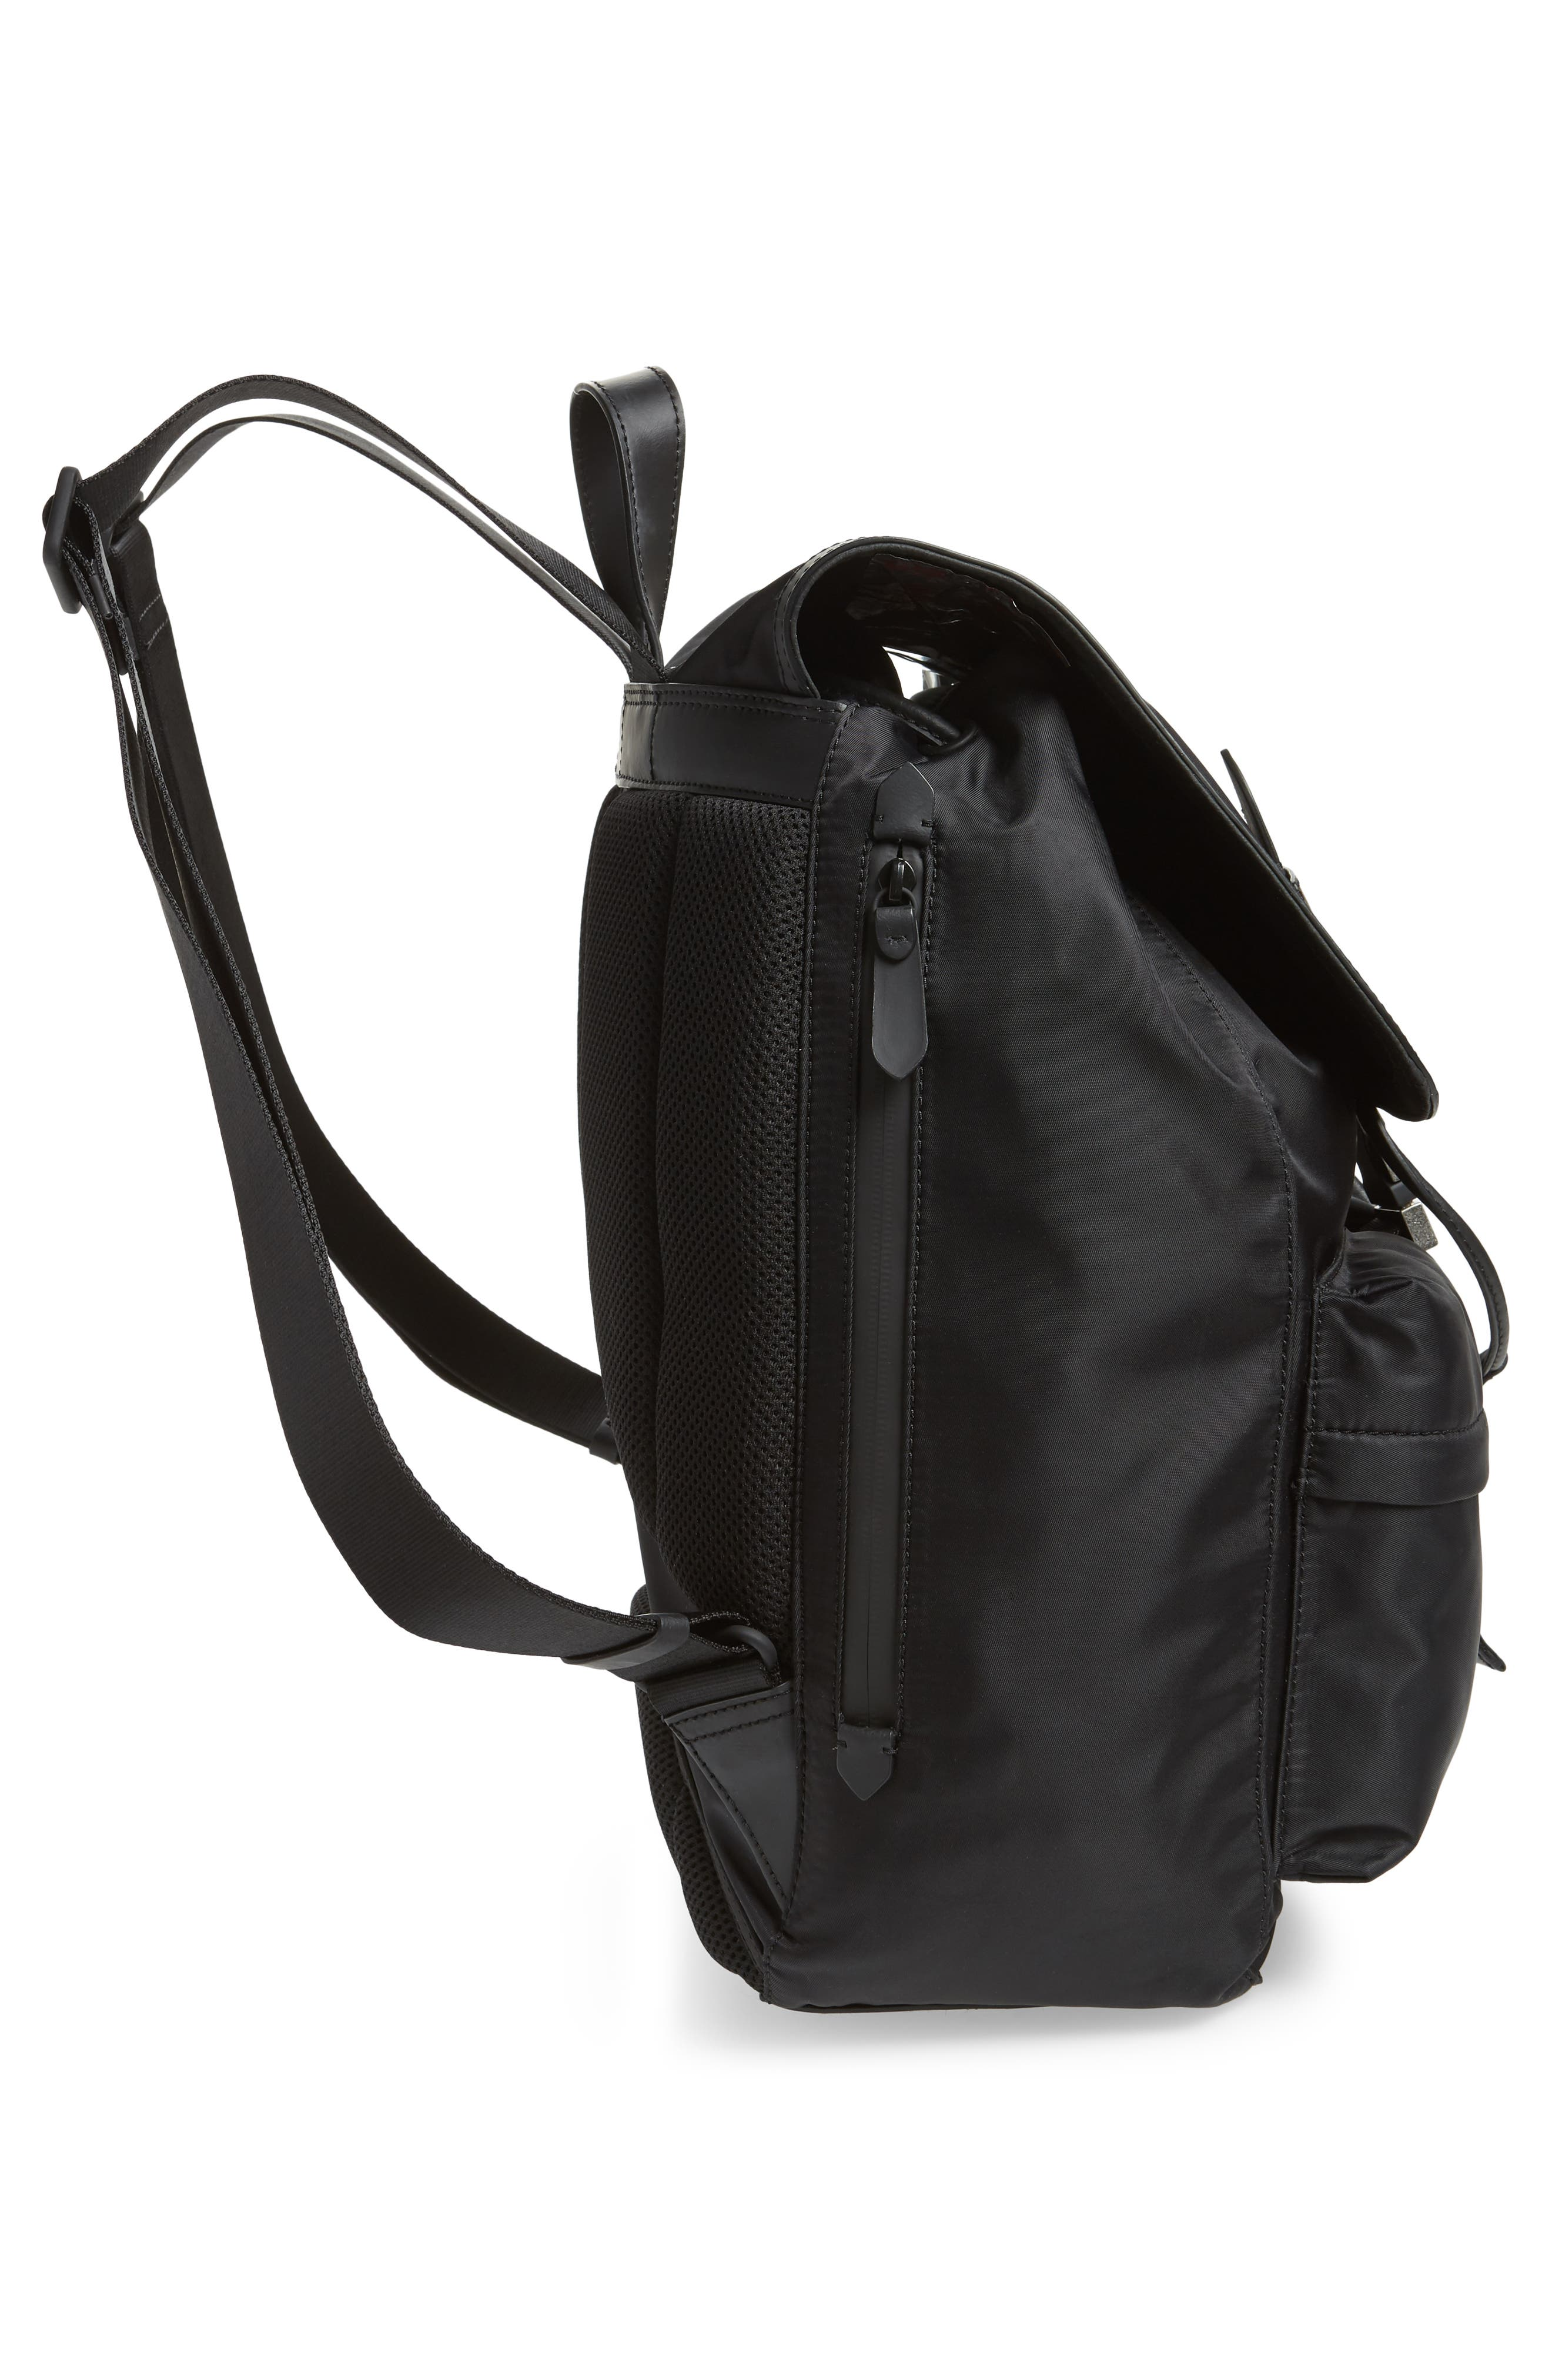 COLE HAAN, ZeroGrand Backpack, Alternate thumbnail 5, color, BLACK